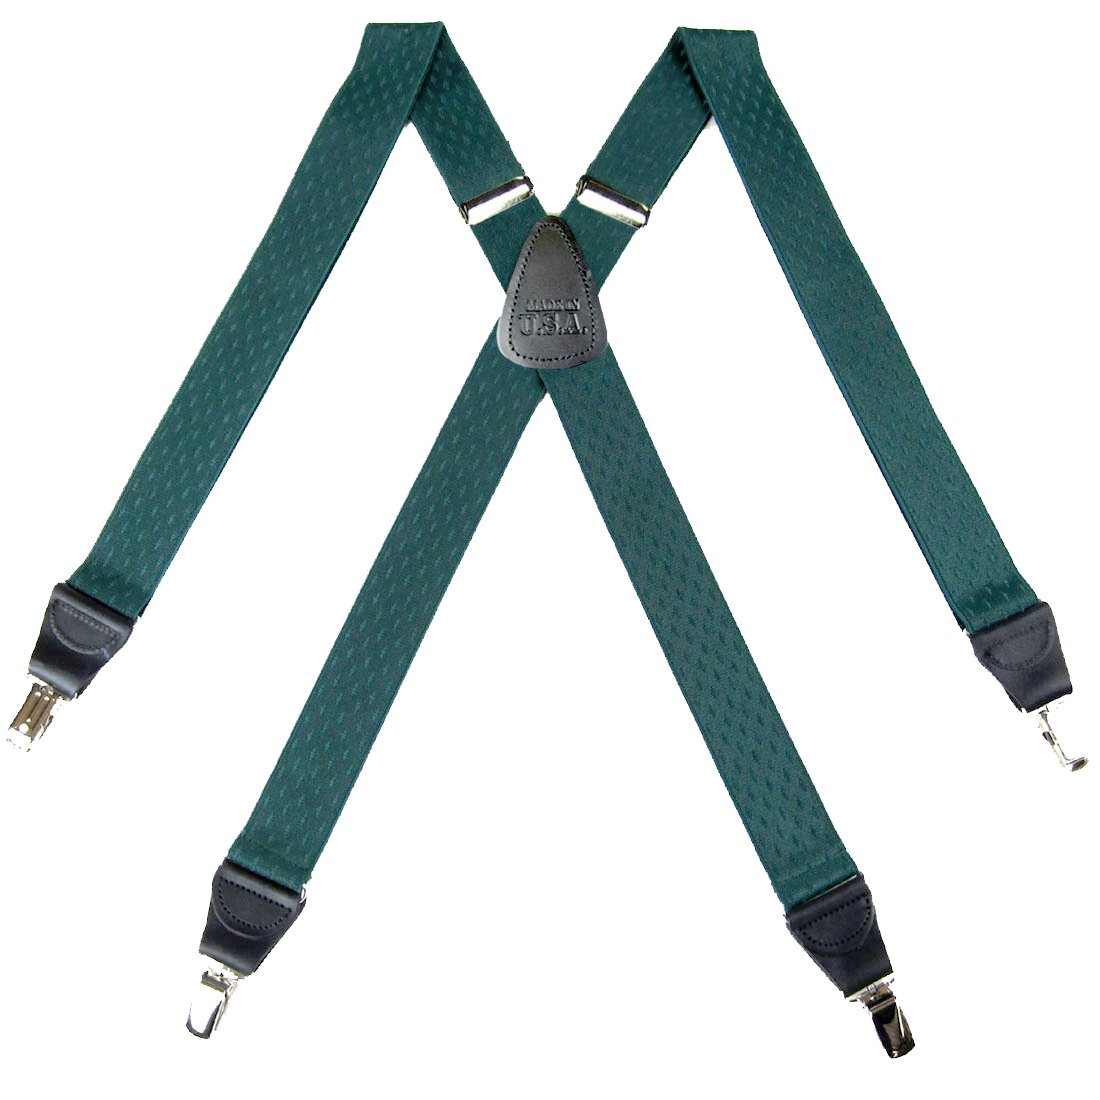 Red Mens Diamond Suspenders for pants trousers Made in the USA